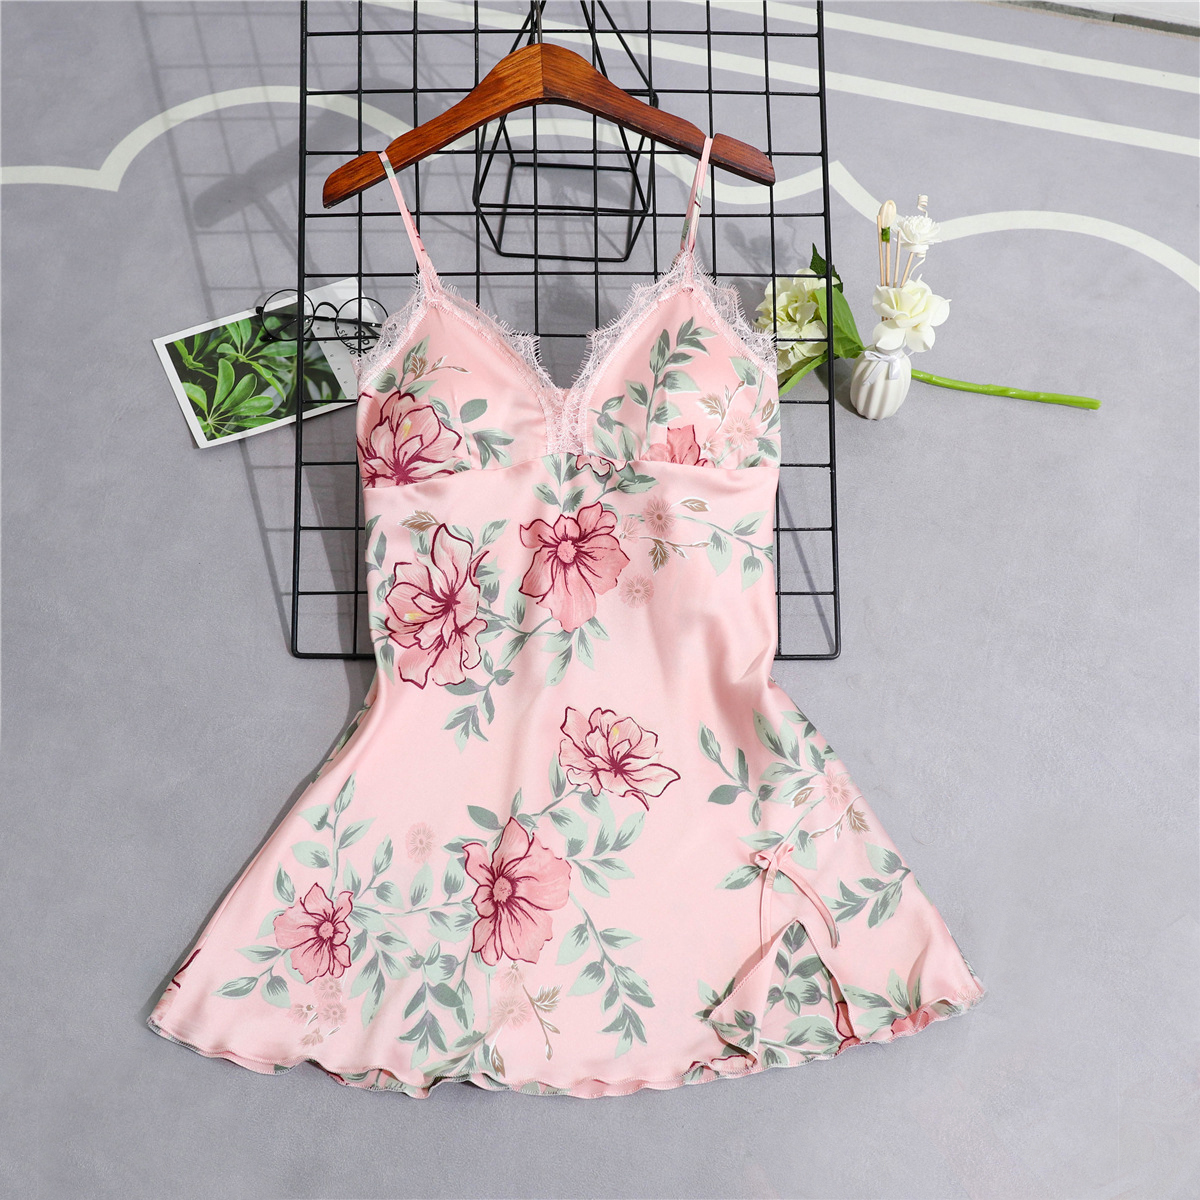 Sexy Womens Silky Sleep Robe Strap Top Sleepwear Sleeveless Nightdress Lady Home Wear   Nightgown   Bath Gown   Sleepshirts   Bathrobe